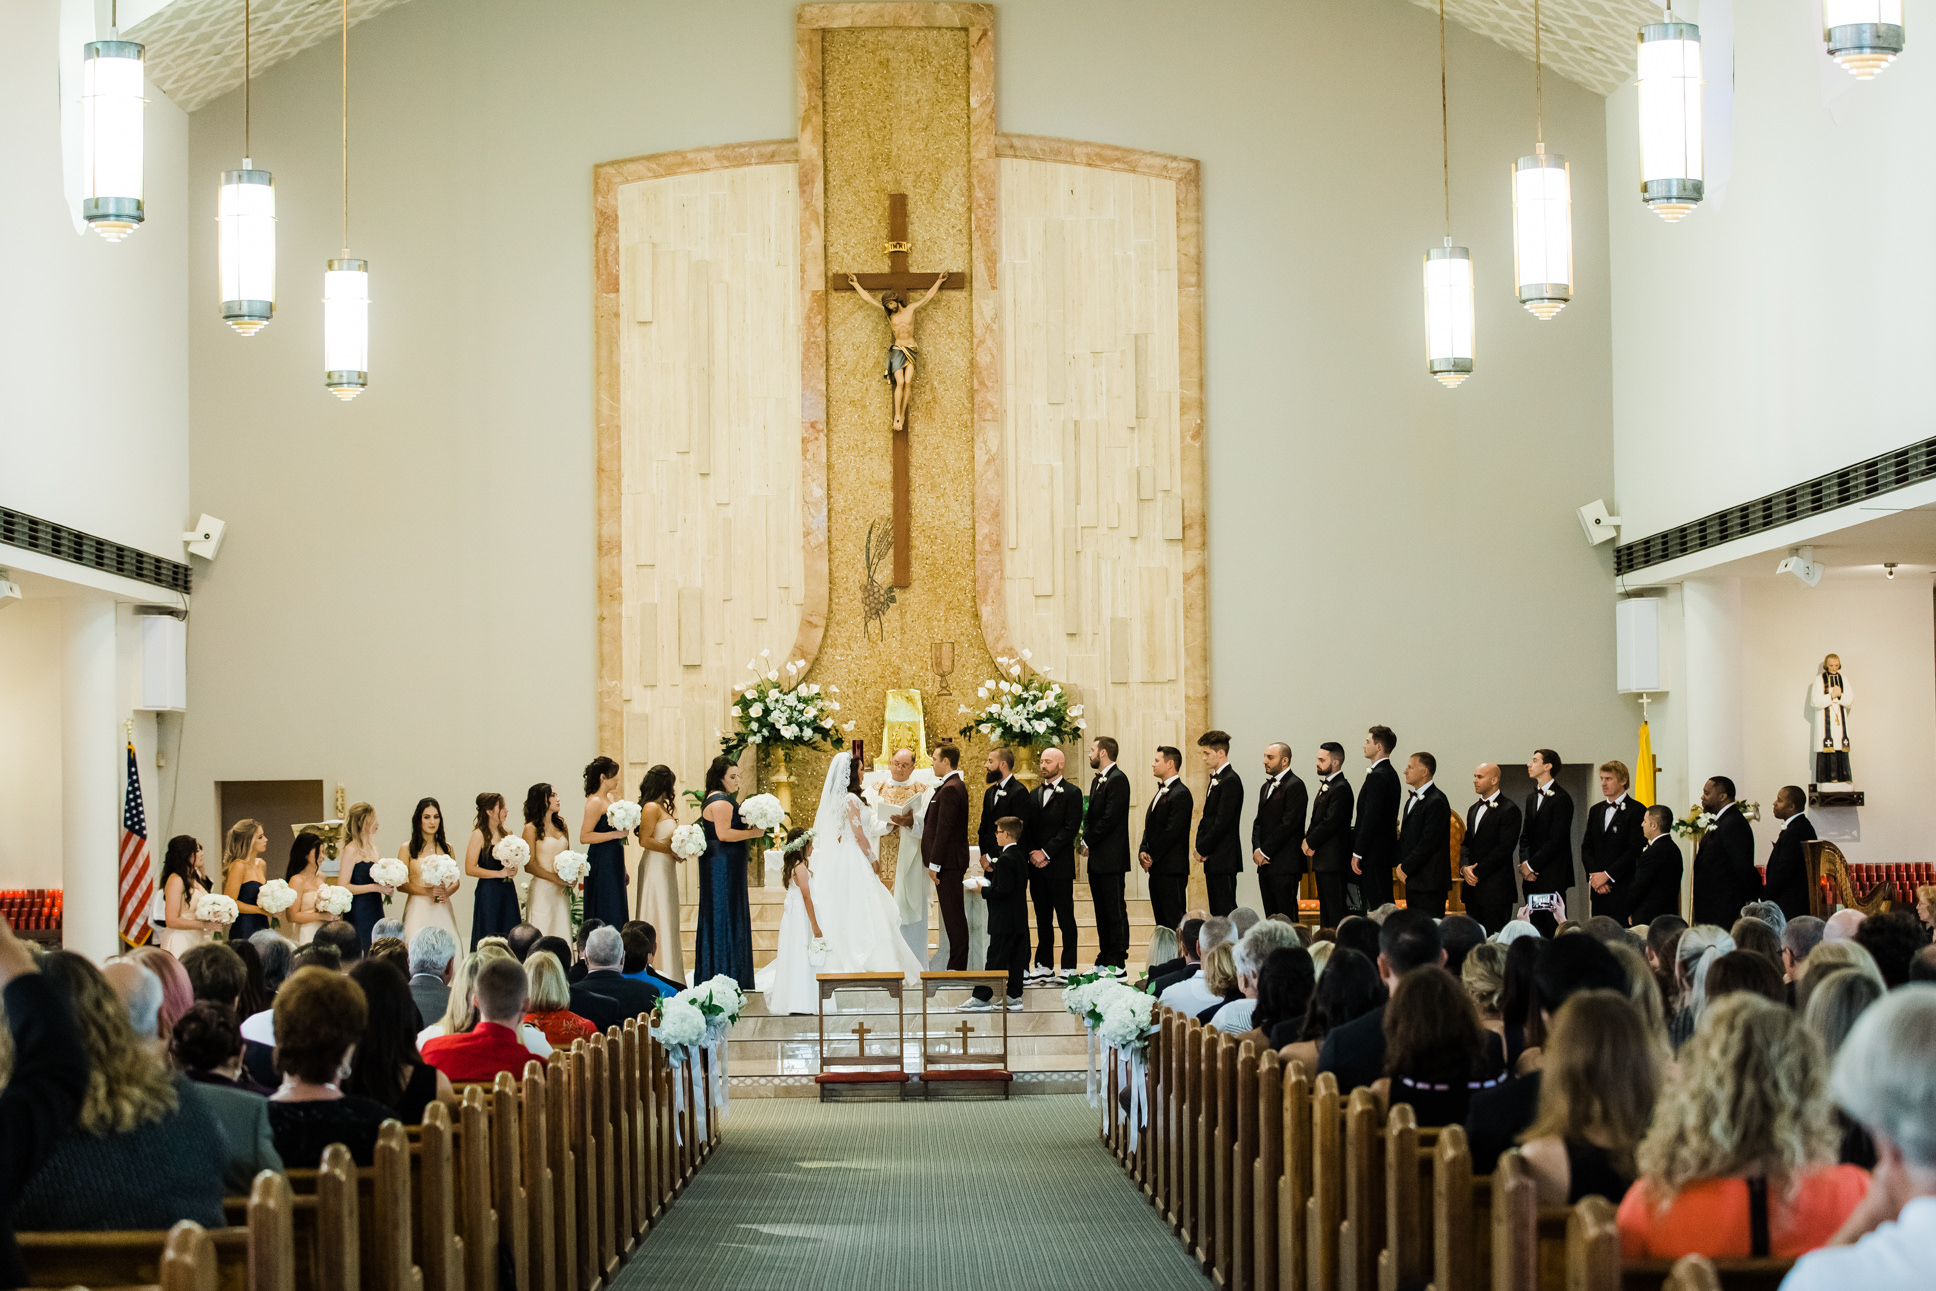 Traditional Bride and Groom Exchanging Wedding Vows During Ceremony   St. Pete Beach Wedding Venue St. John Vianney Catholic Church